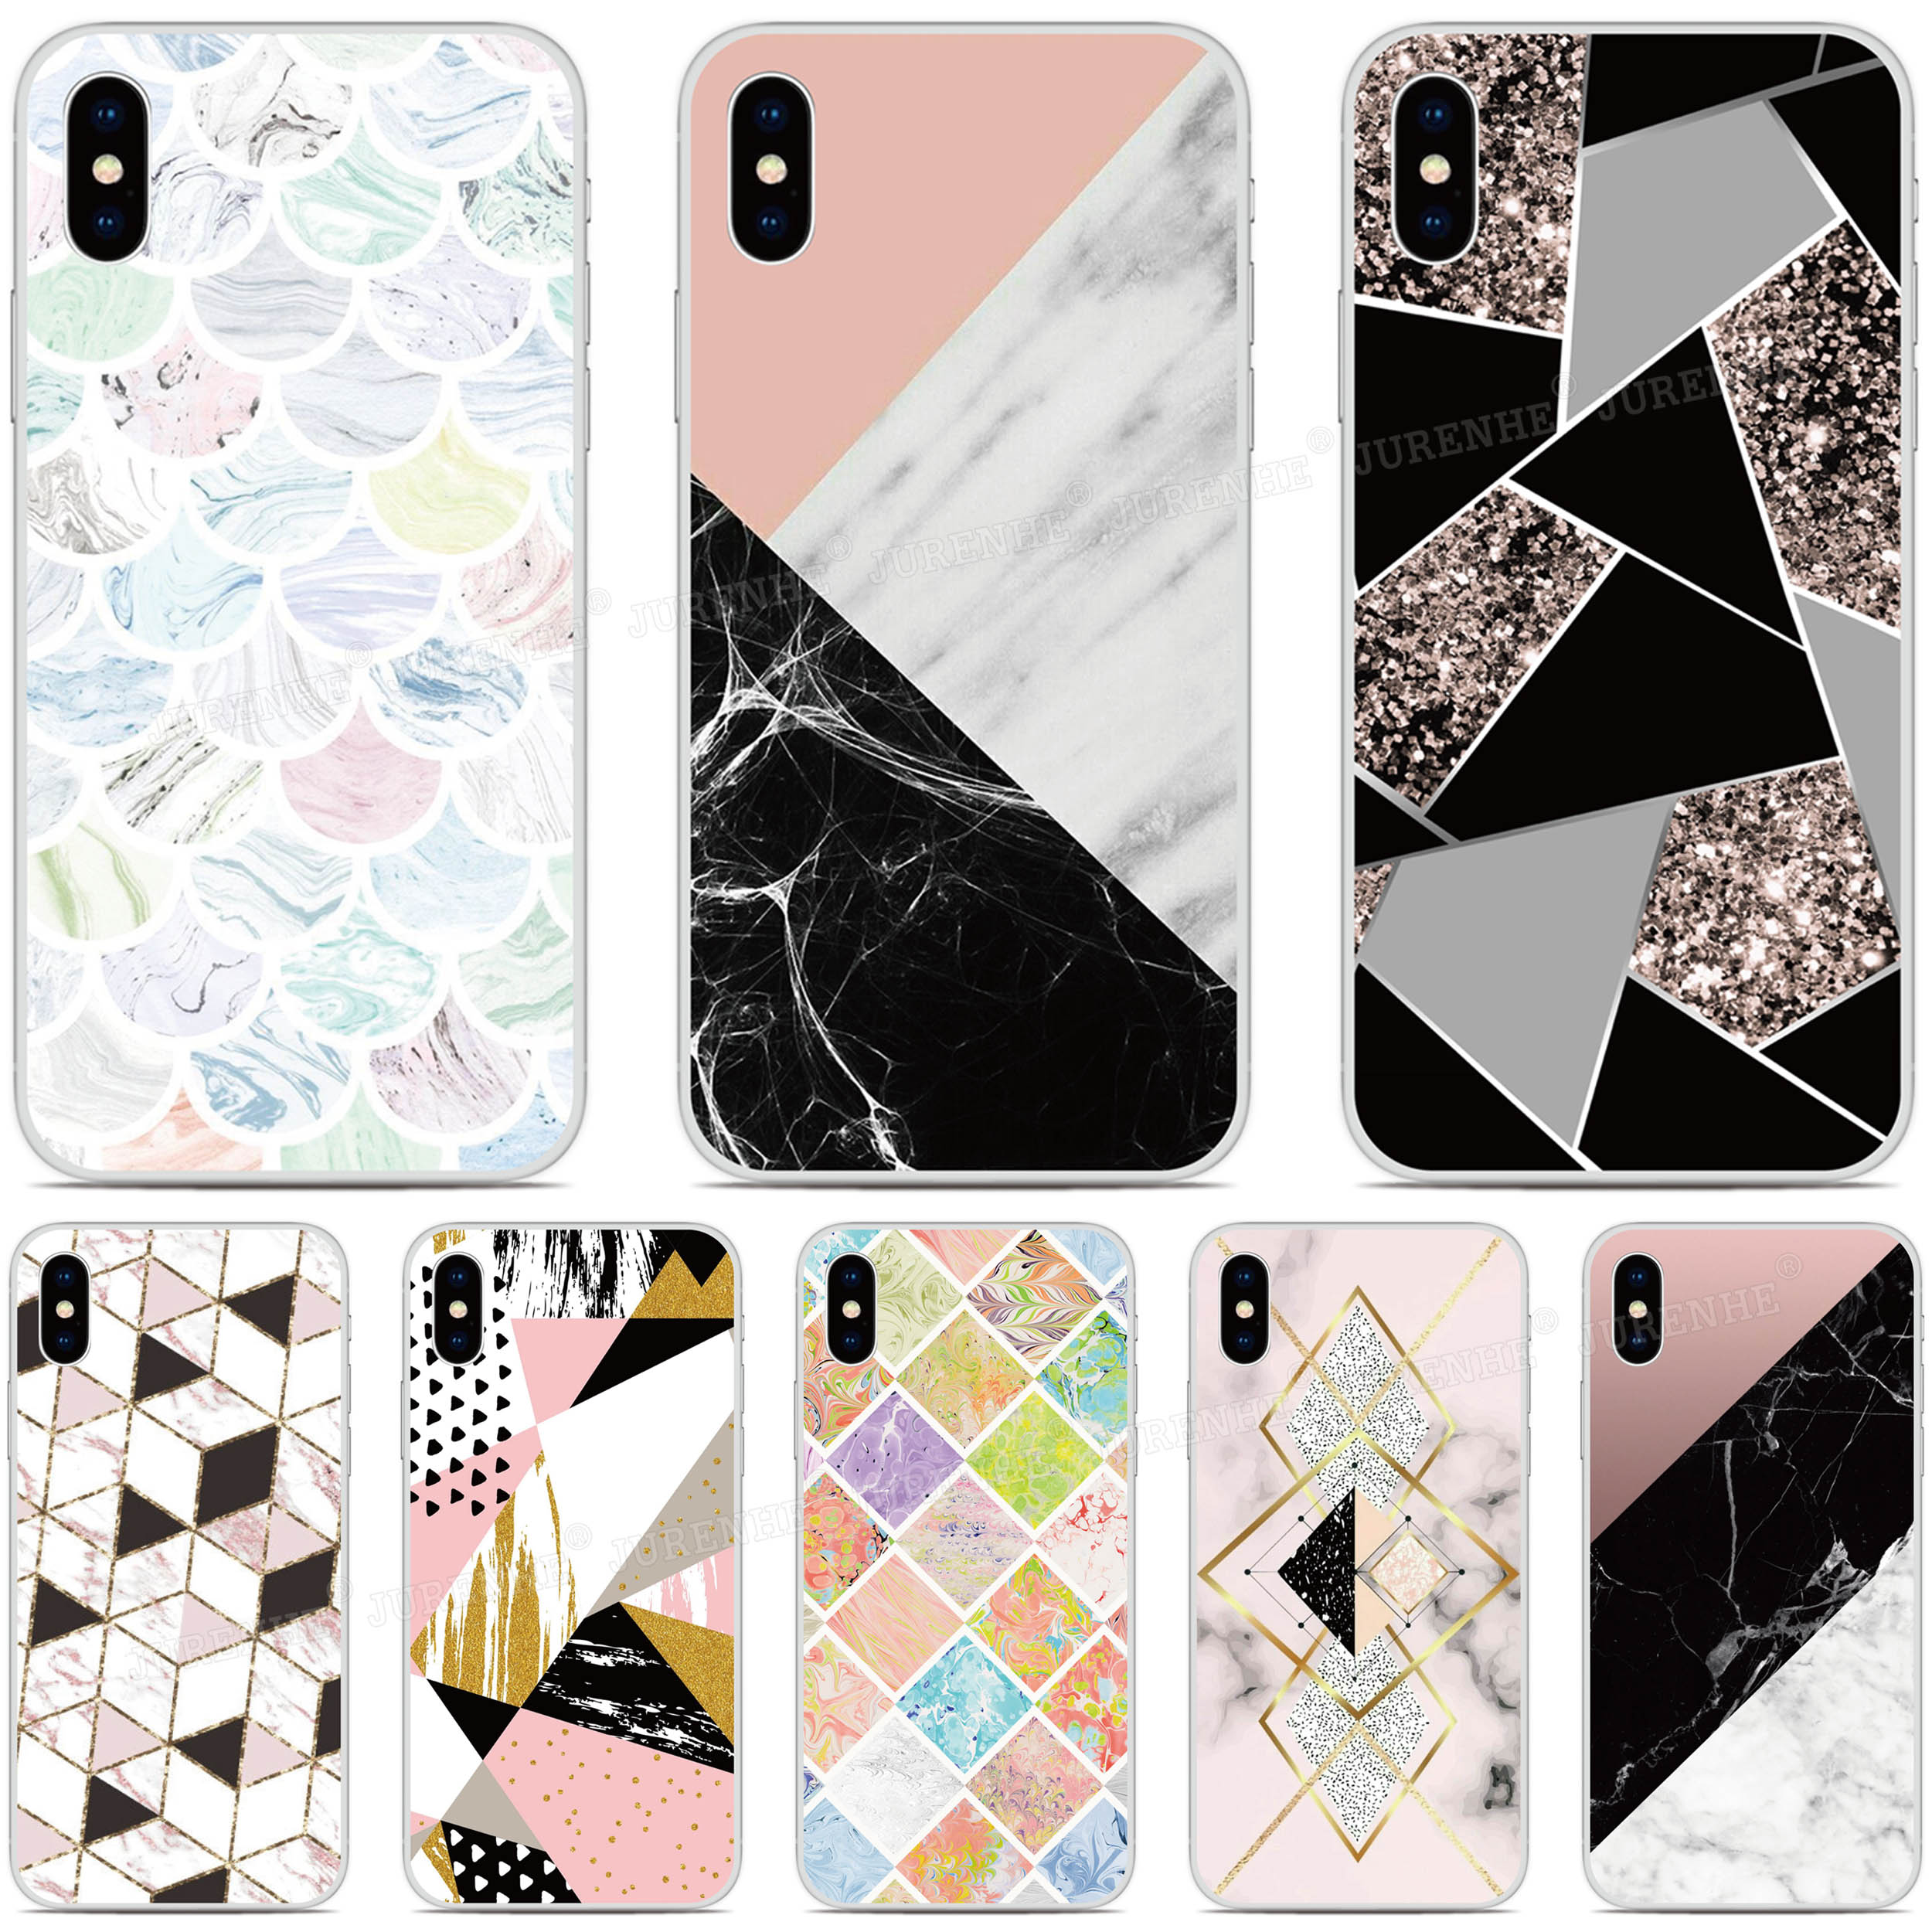 Soft Silicone Geometric Marble <font><b>Cover</b></font> Cases For <font><b>Oukitel</b></font> C18 K6000 C17 C16 <font><b>C15</b></font> C13 C12 U25 <font><b>Pro</b></font> K9 K3 U22 U20 Plus Y4800 Phone Case image